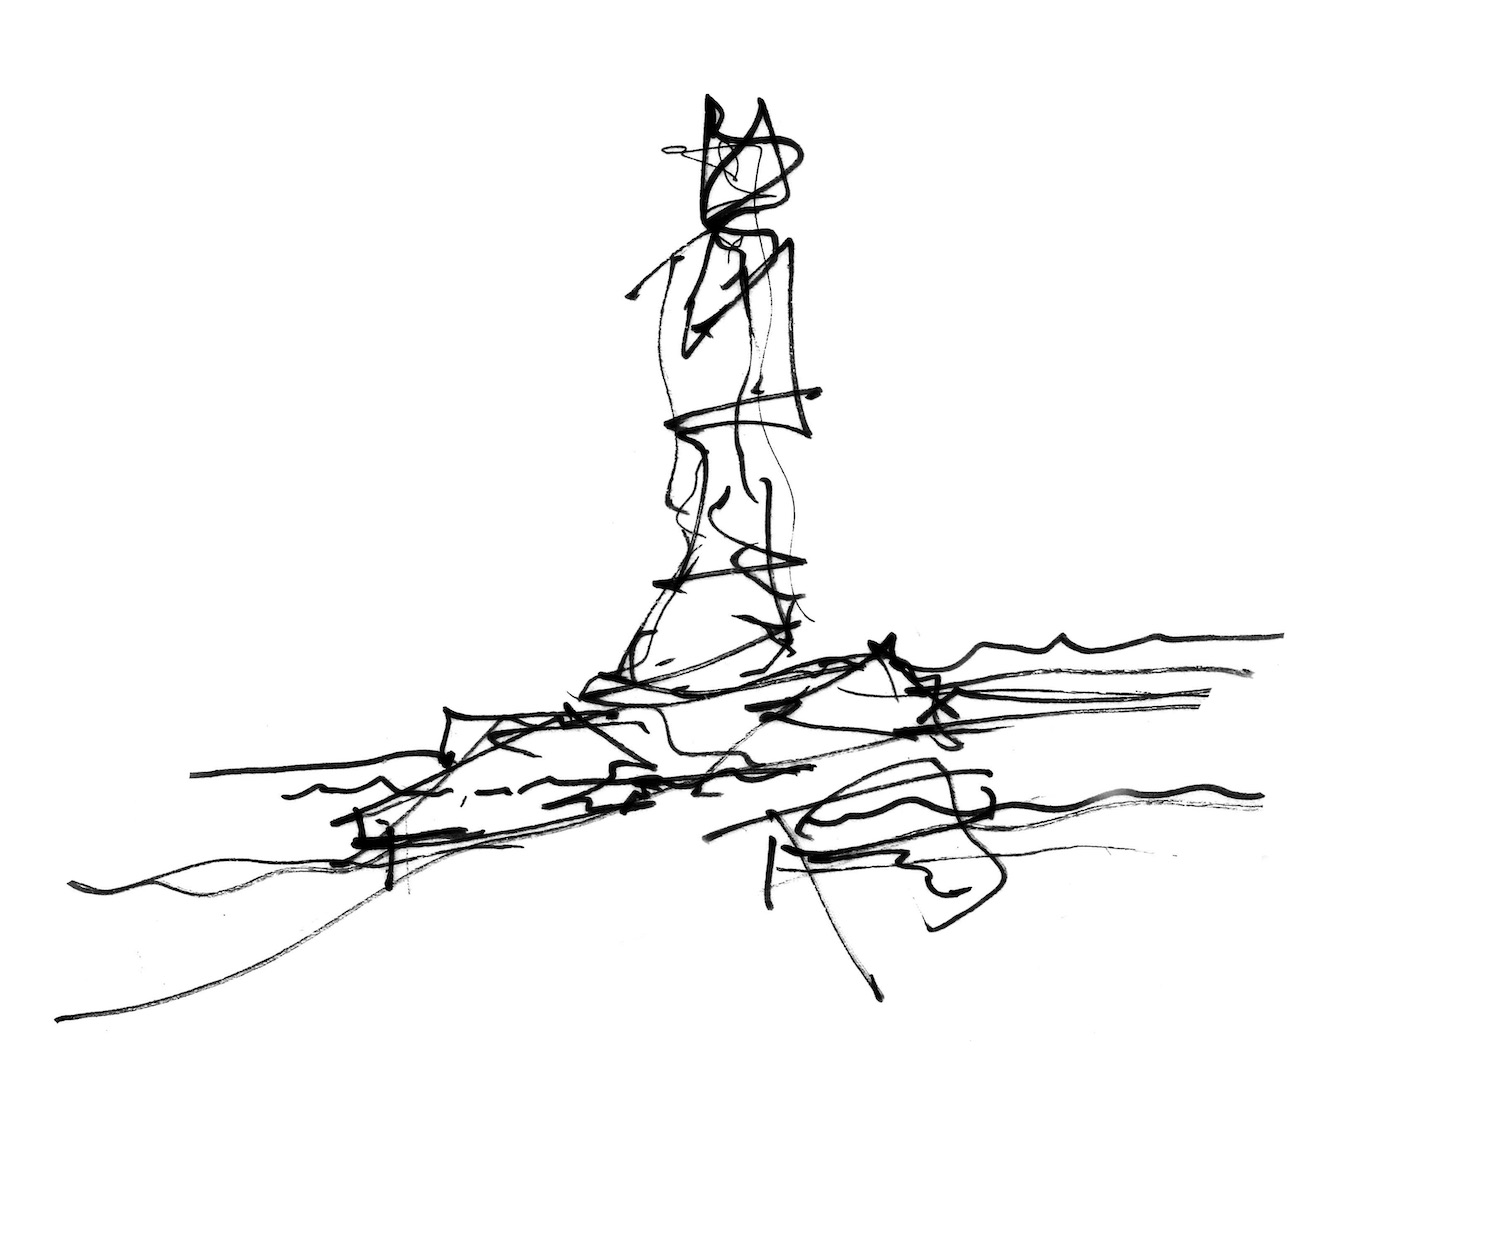 architectural sketch of a tower